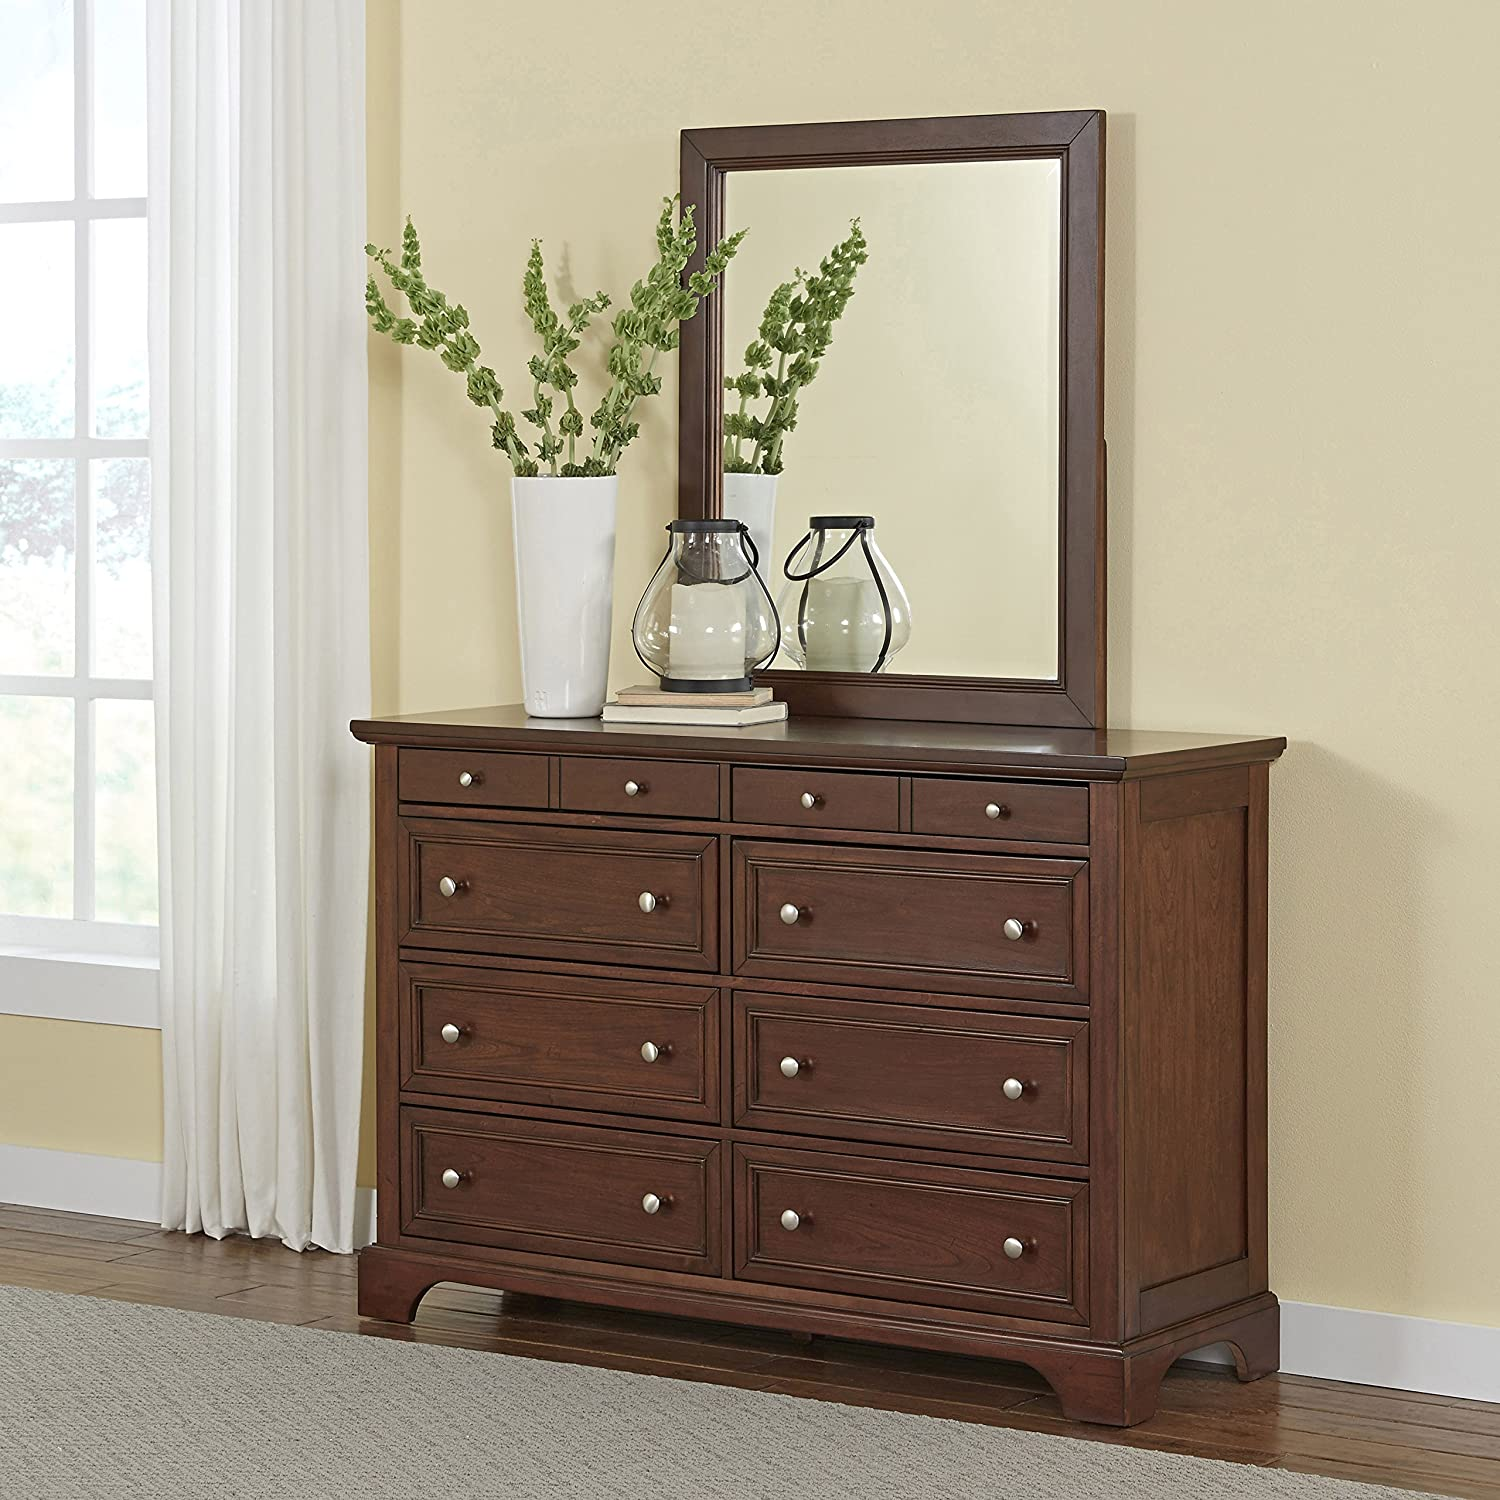 of mirror drawer furniture dresser rexburg america z bedroom with